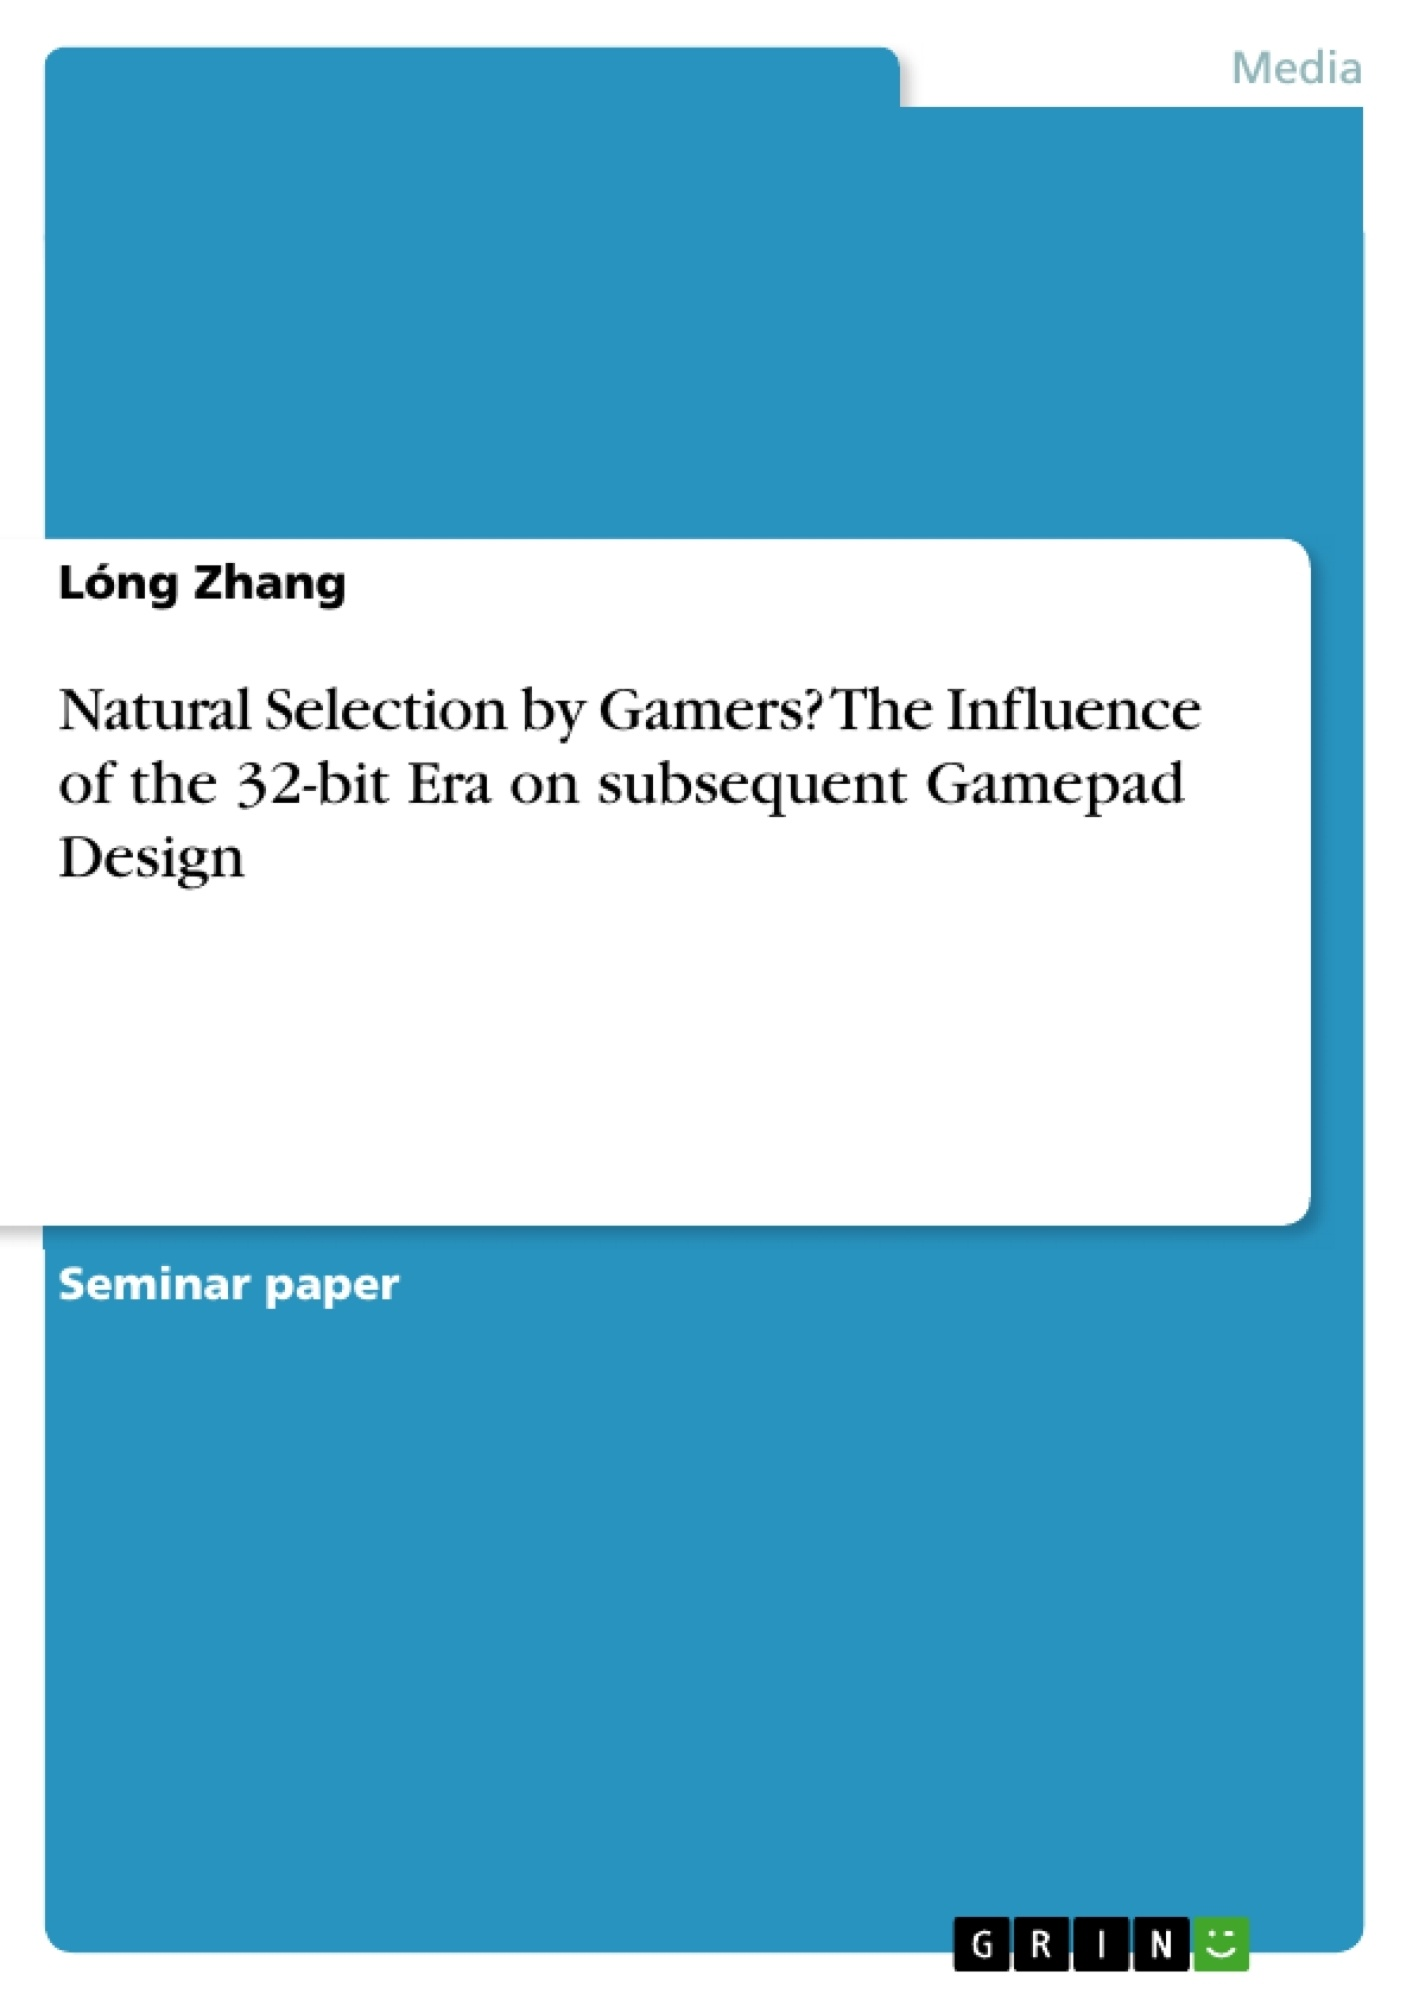 Title: Natural Selection by Gamers? The Influence of the 32-bit Era on subsequent Gamepad Design